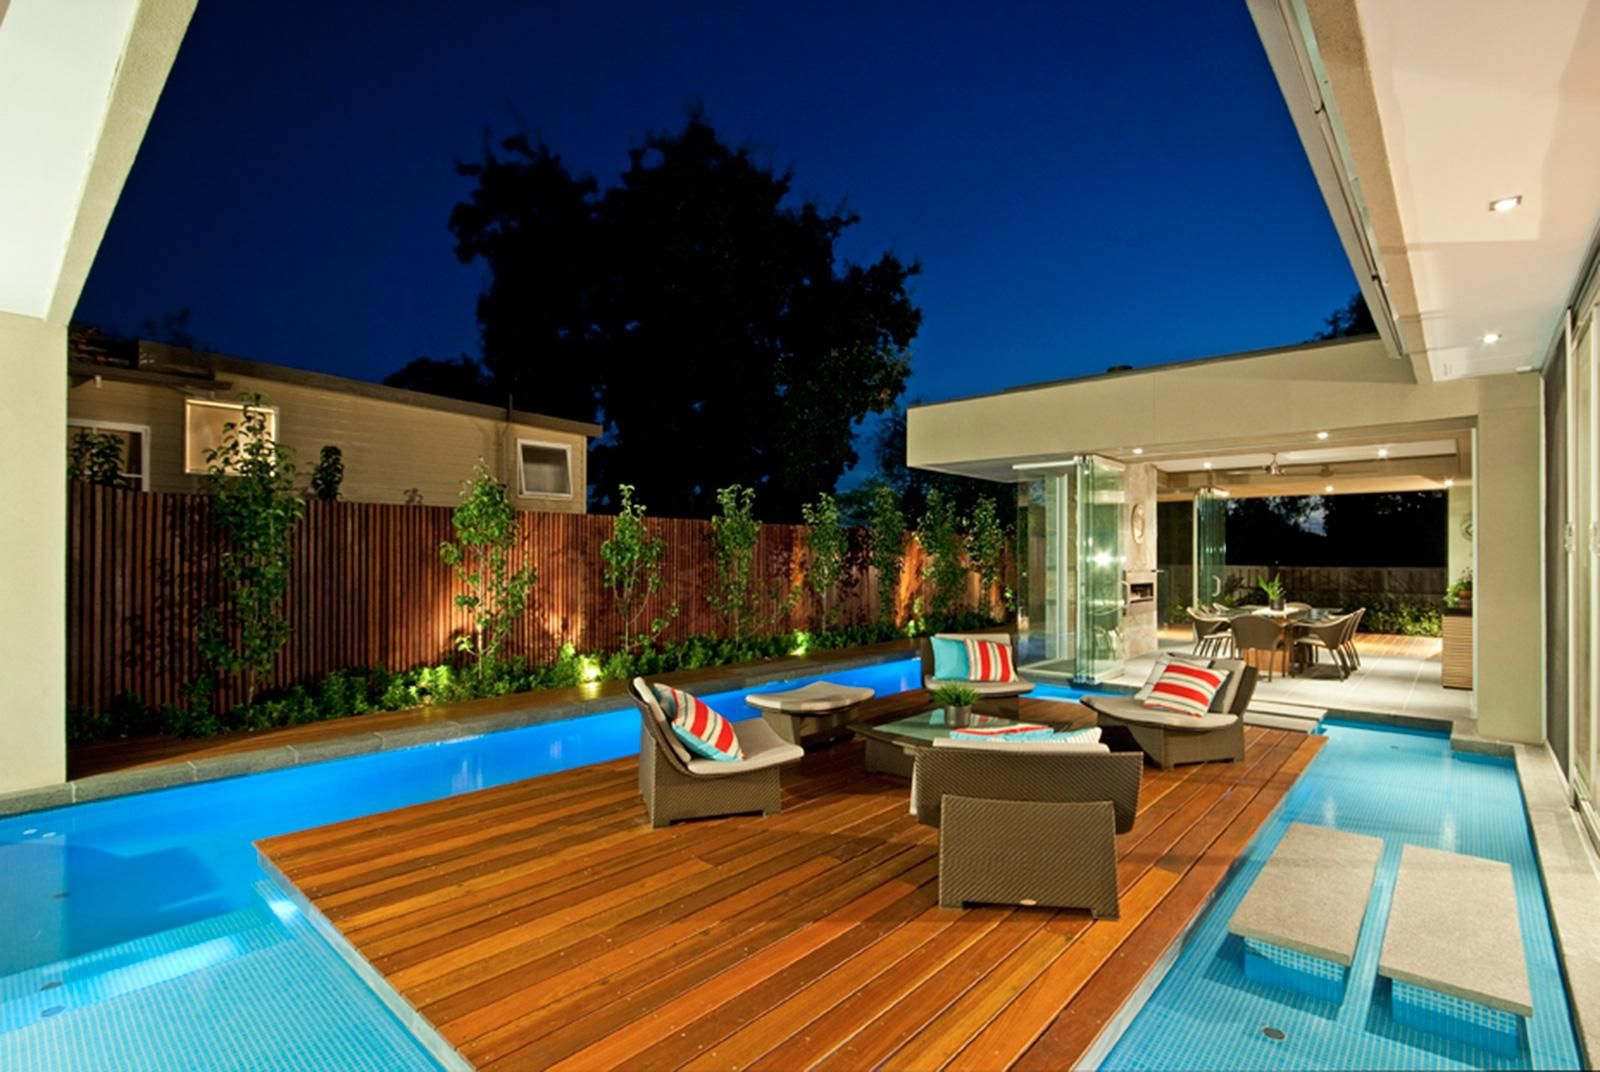 Wonderful swimming pool design idea with wooden floor deck for Outdoor pool room ideas